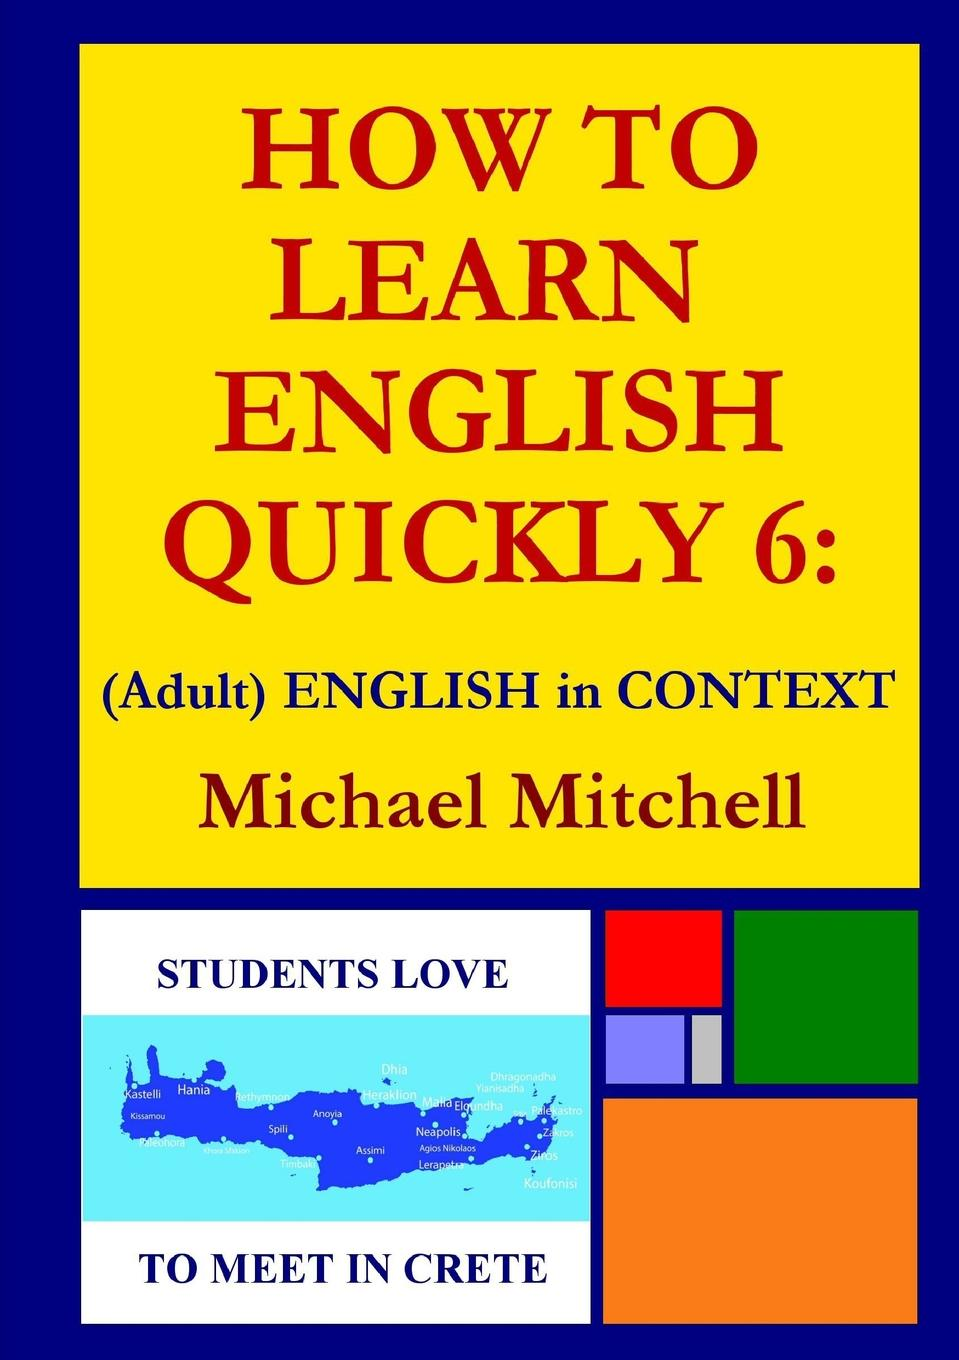 Michael Mitchell HOW TO LEARN ENGLISH QUICKLY 6. (Adult) ENGLISH IN CONTEXT